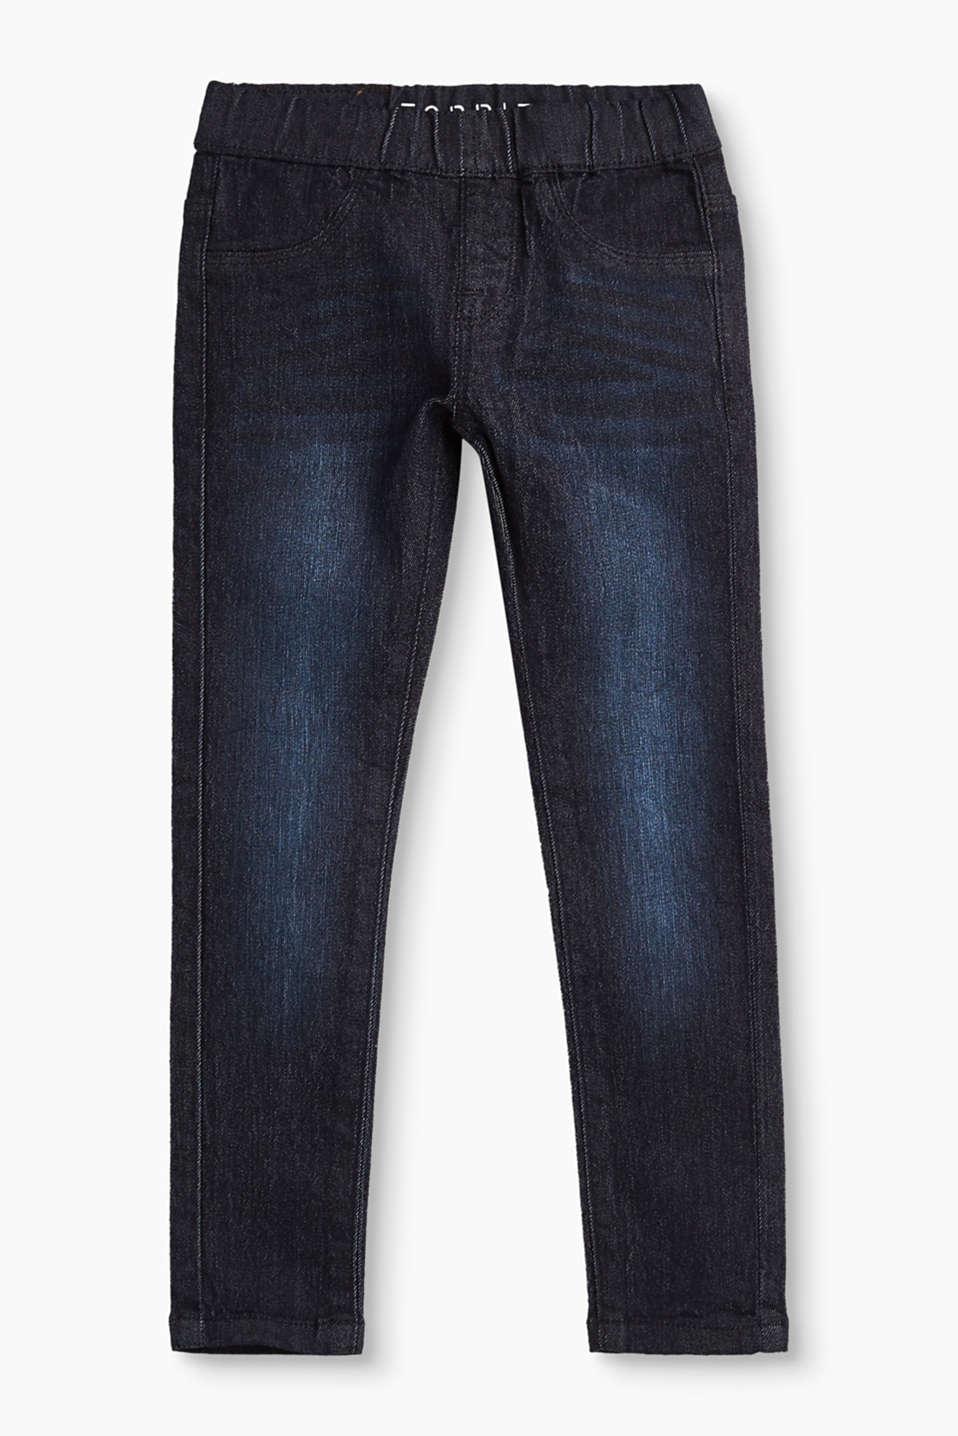 Esprit - Jeggings i mörk denim med stretch